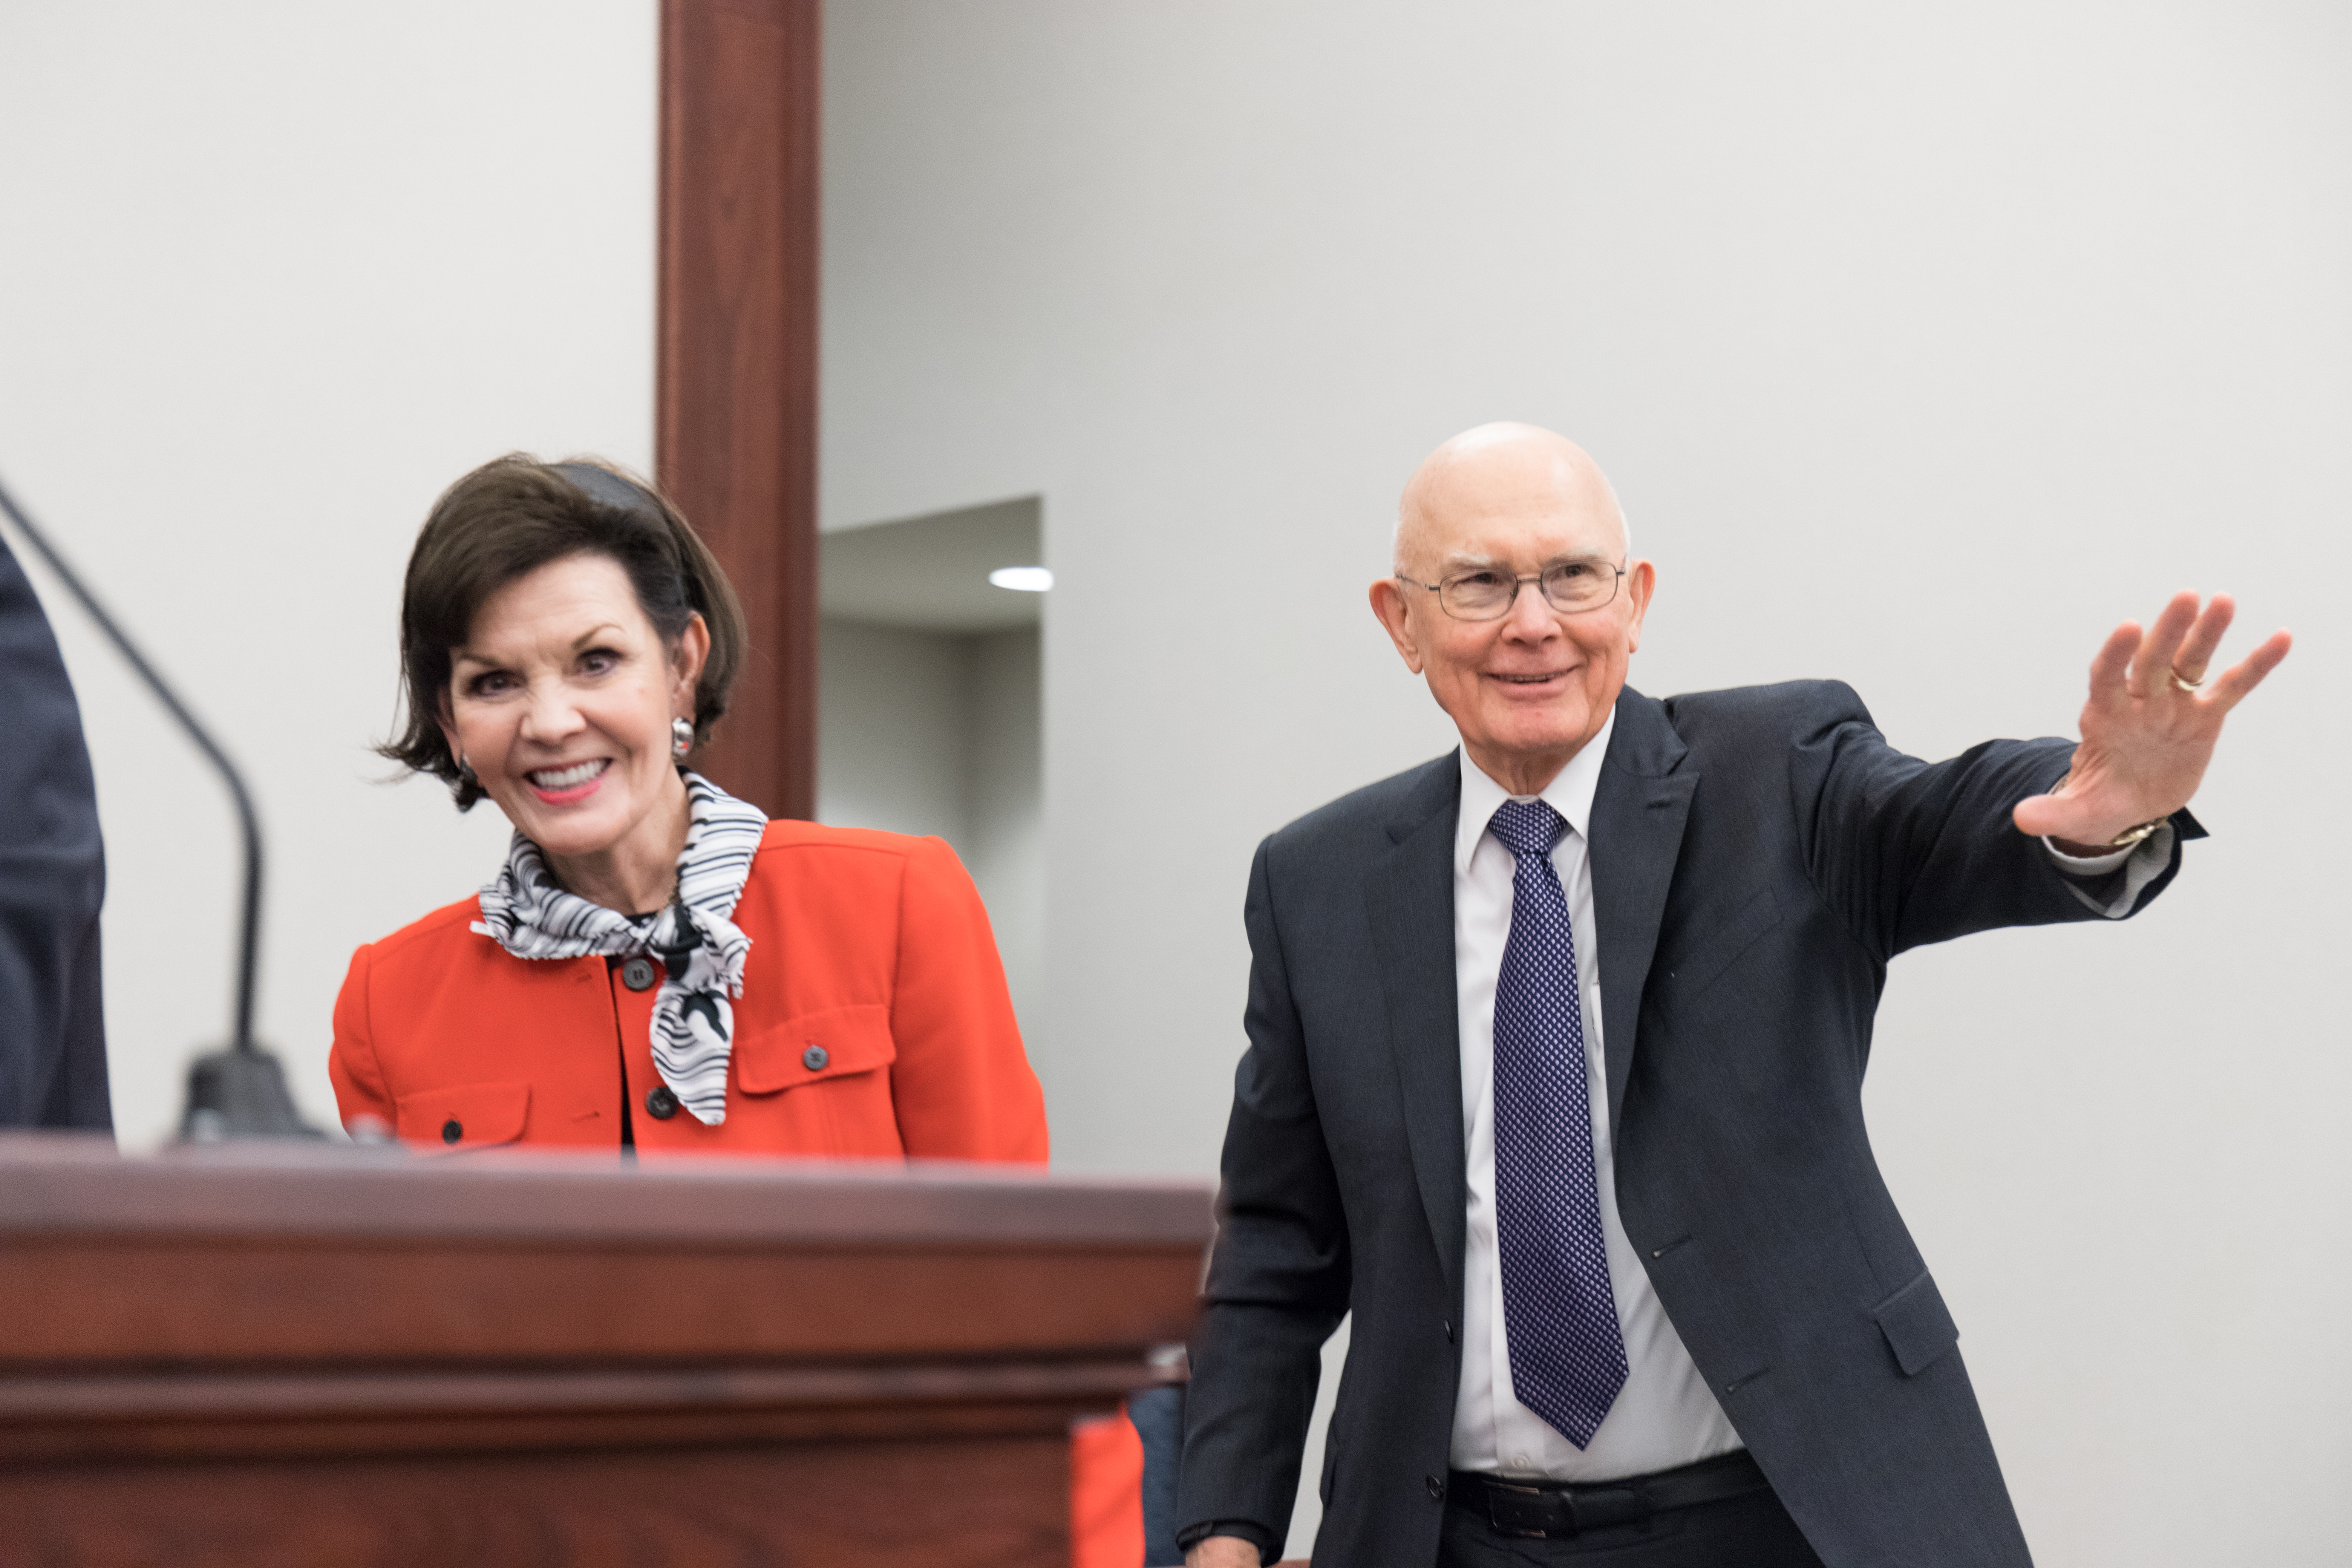 President Dallin H. Oaks and Sister Kristen Oaks bid farewell to audience members following Feb. 2, 2019, devotional for young married couples in downtown Chicago.